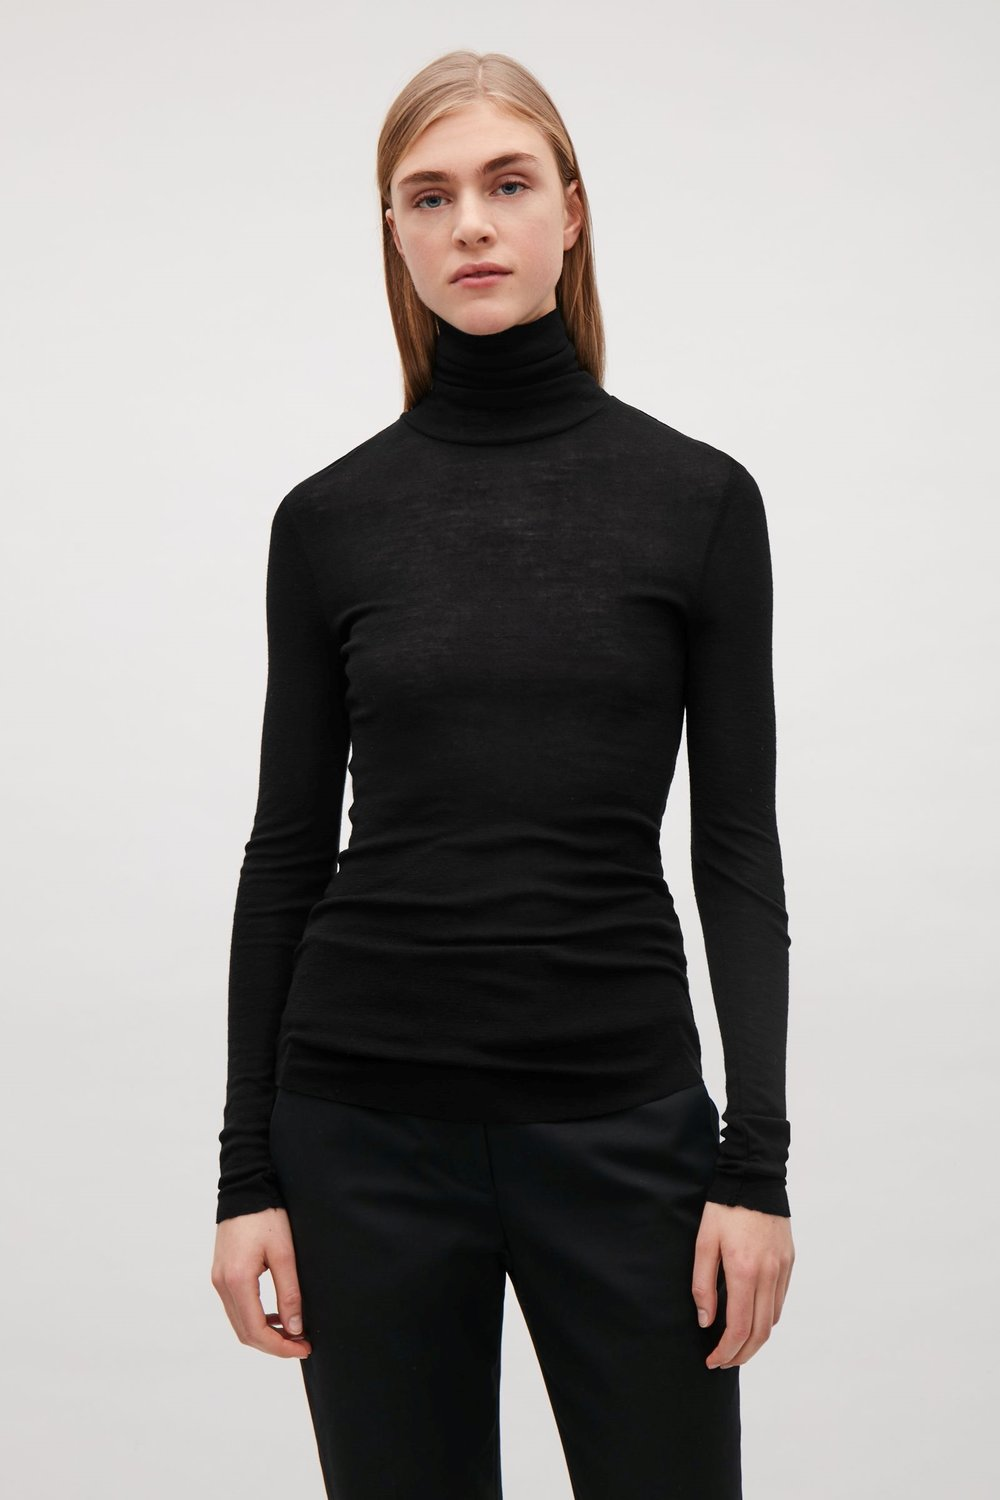 - ESSENTIAL TURTLENECK. ROLL-NECK WOOL TOP / Cos $69